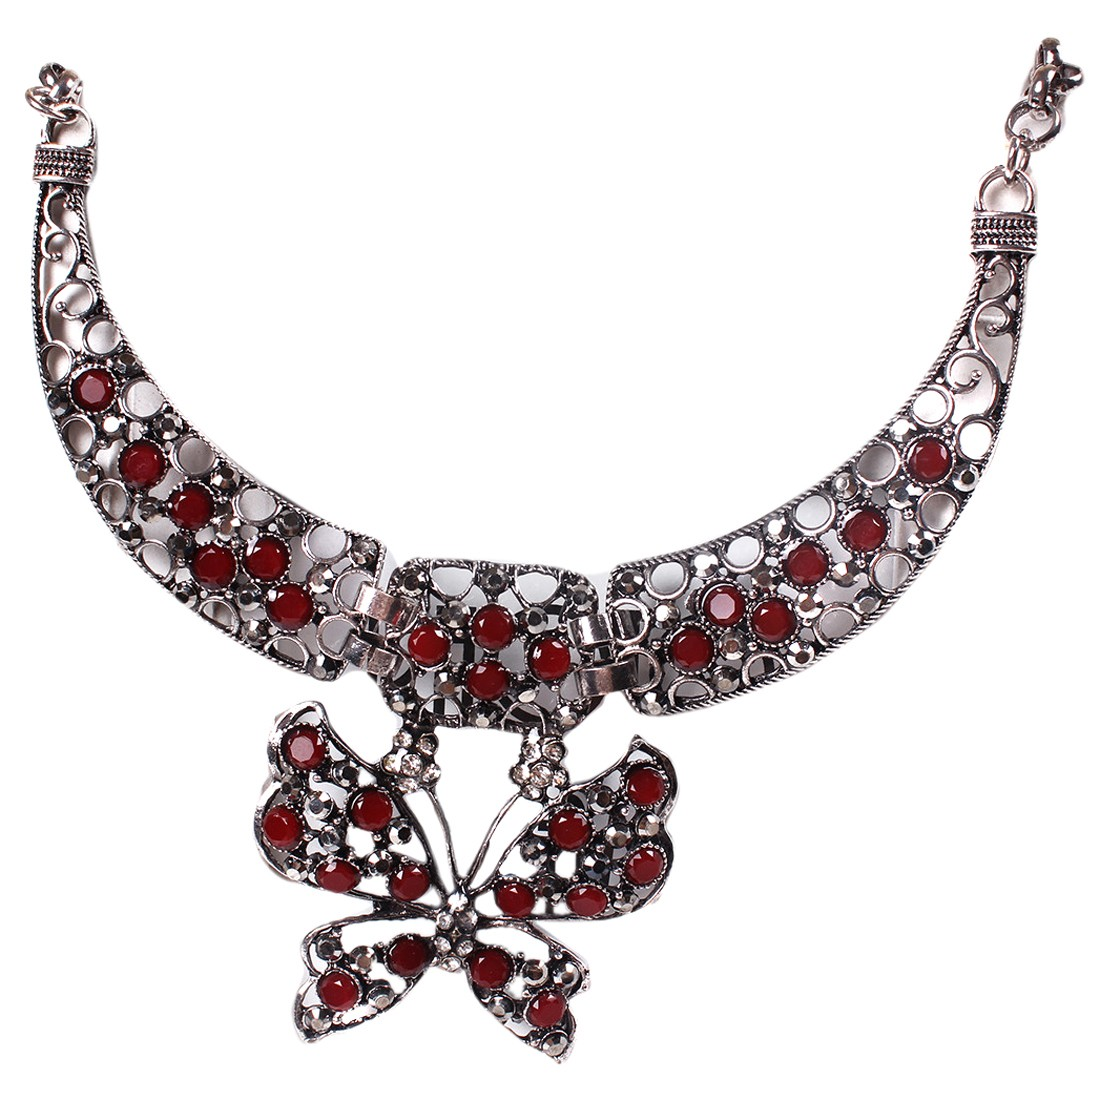 Chunky Necklace Collar Antique Silver Hollow Resin Bead Butterfly Pendant W1 Ebay